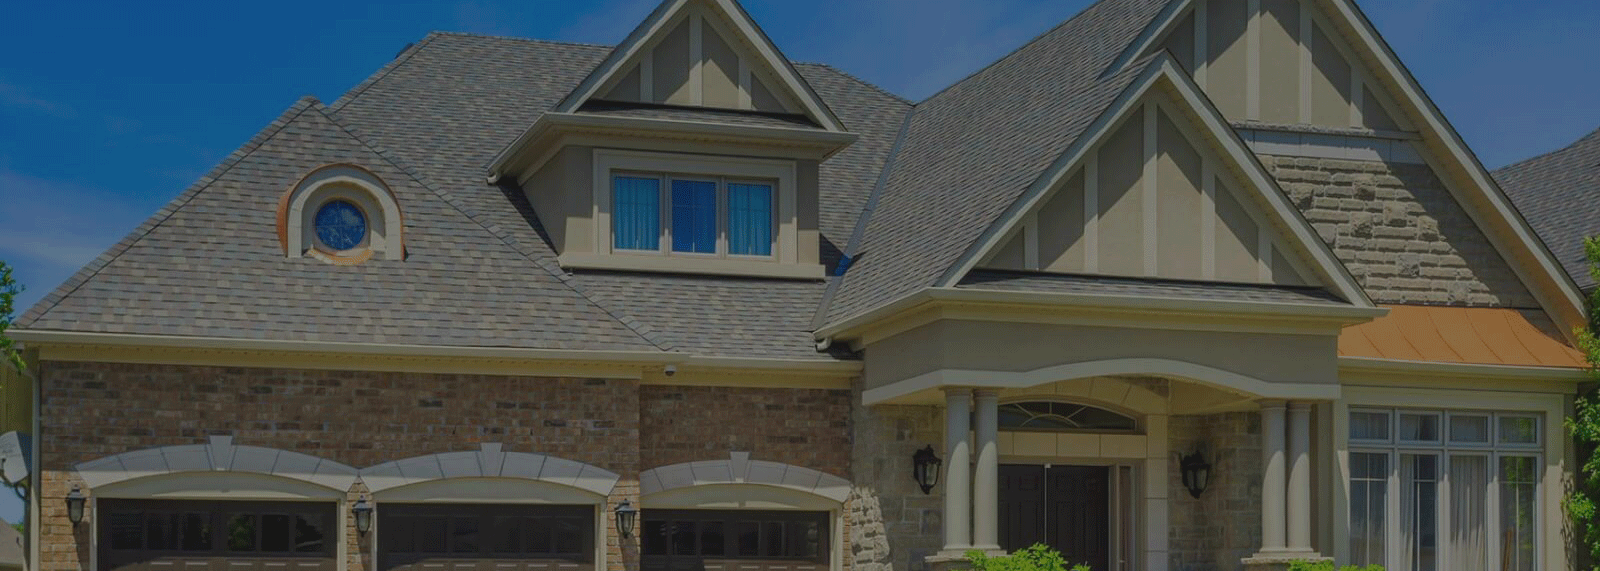 Webster TX metal roofing prices